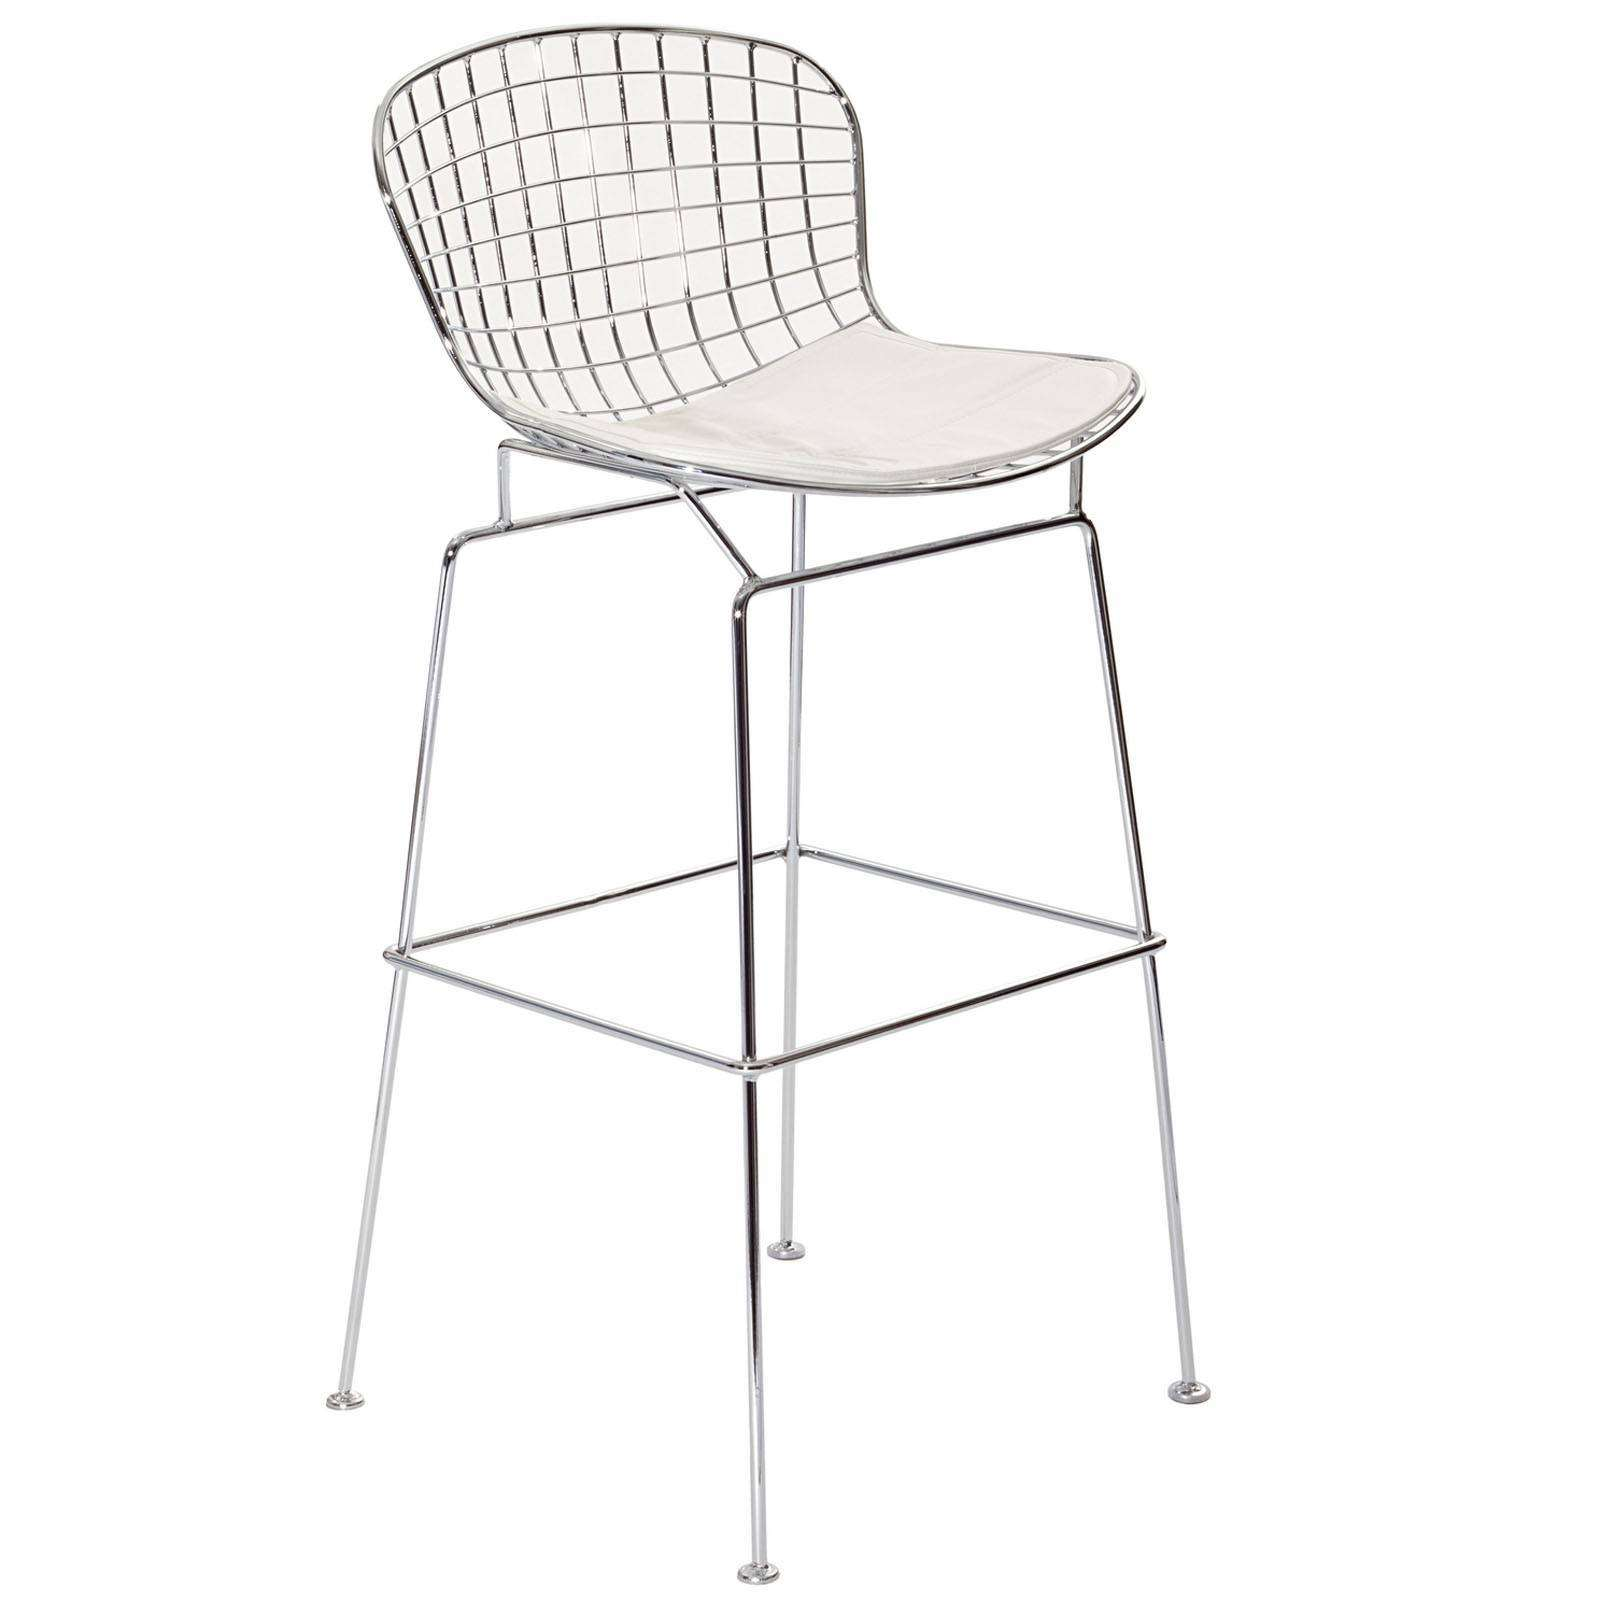 harry bertoia style bar stool. Black Bedroom Furniture Sets. Home Design Ideas